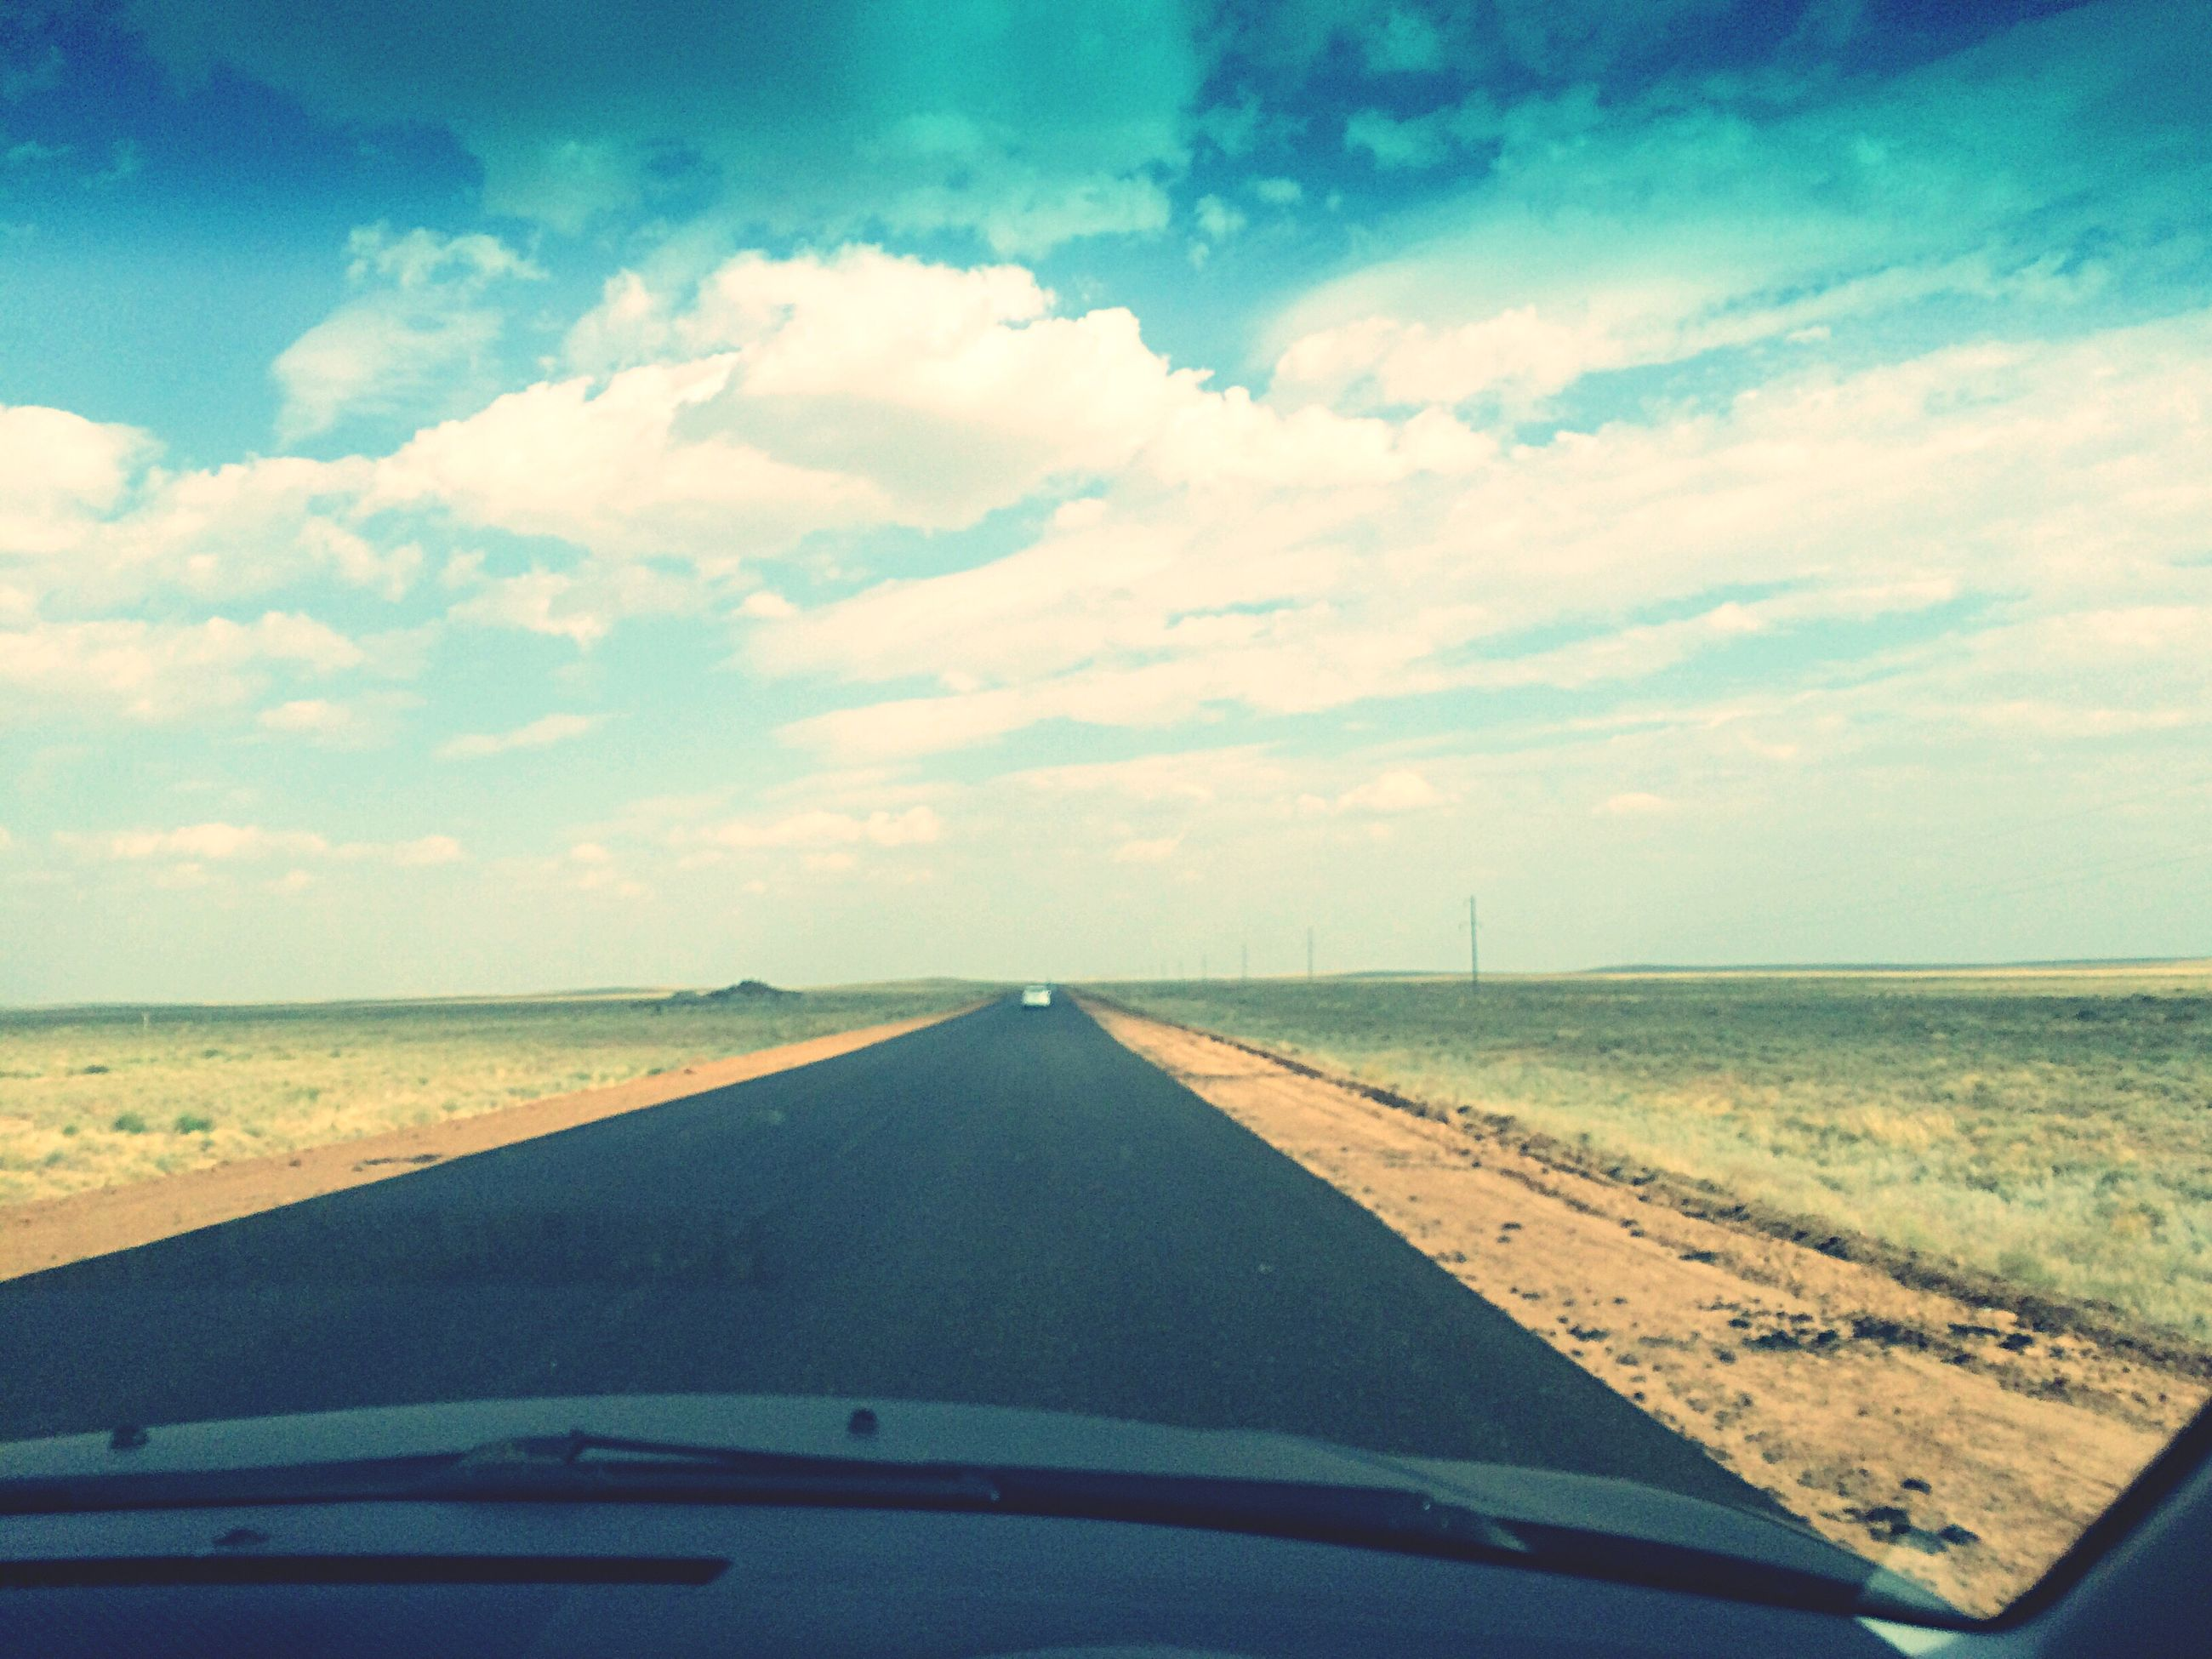 transportation, the way forward, road, sky, diminishing perspective, vanishing point, tranquil scene, cloud, landscape, empty, sea, tranquility, cloud - sky, day, long, outdoors, nature, horizon over land, blue, summer, scenics, ocean, straight, cumulus cloud, non-urban scene, vacations